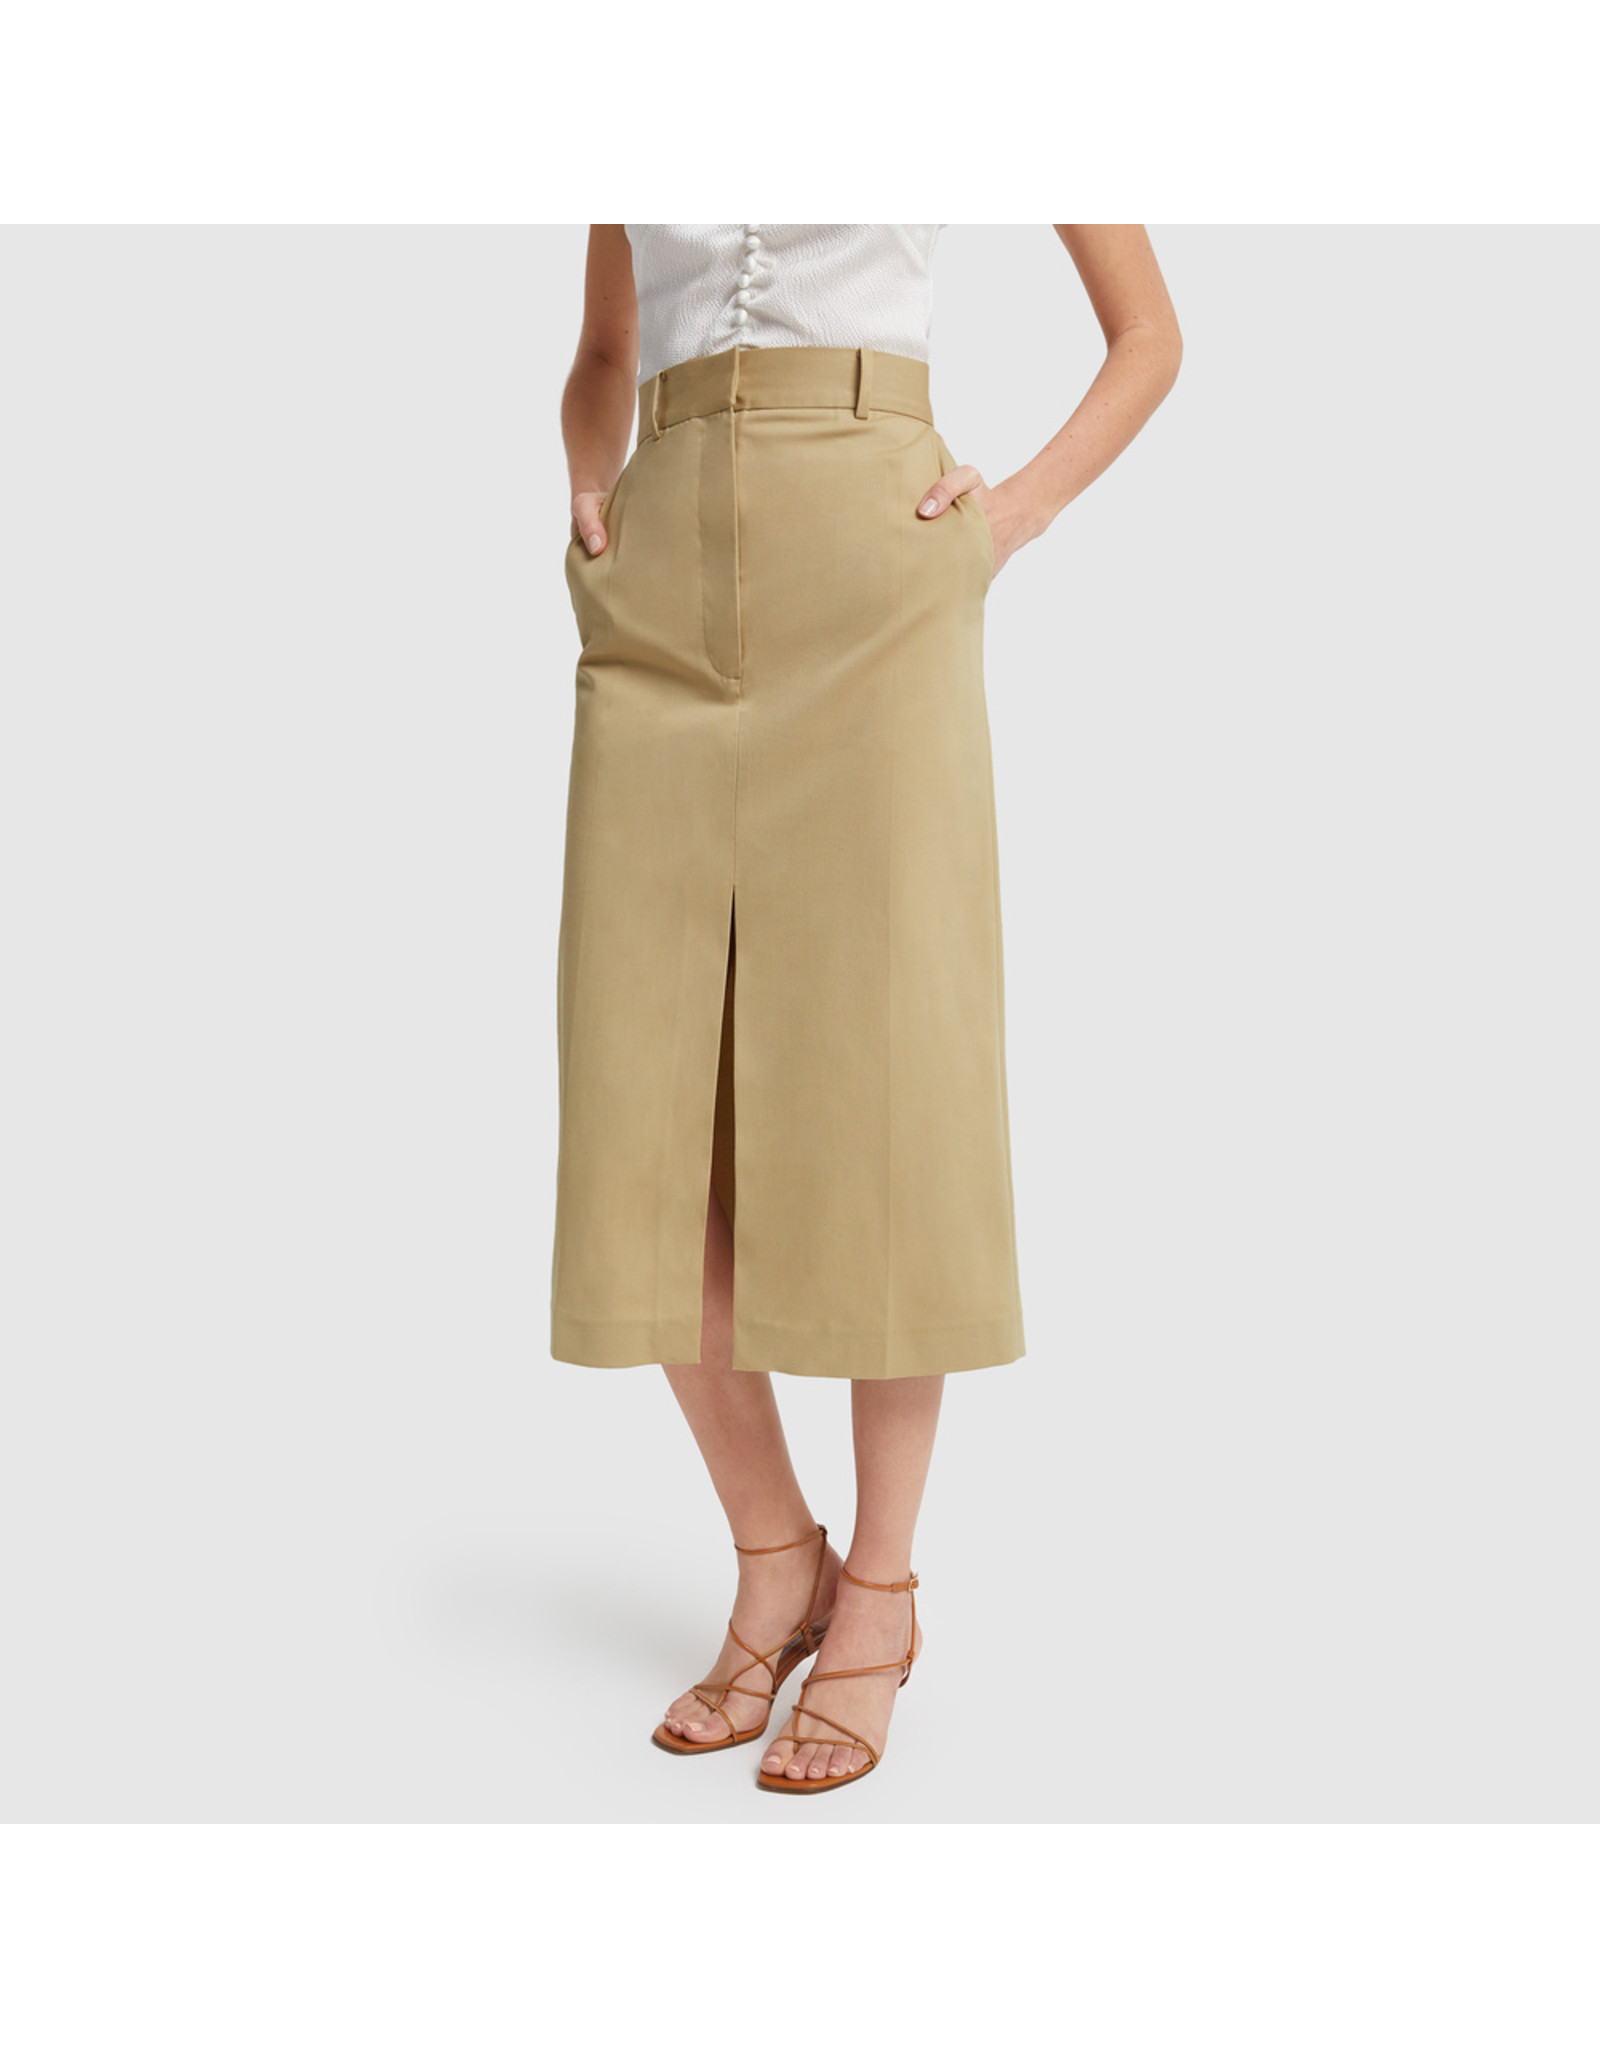 G. Label G. Label Alexandra Slit Trouser Skirt (Size: 10, Color: Khaki)